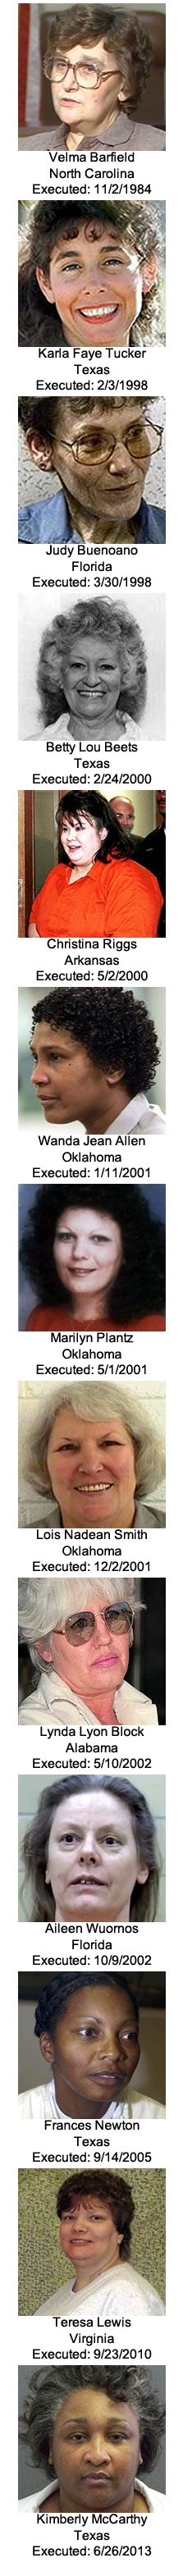 Women and the Death Penalty | Death Penalty Information Center